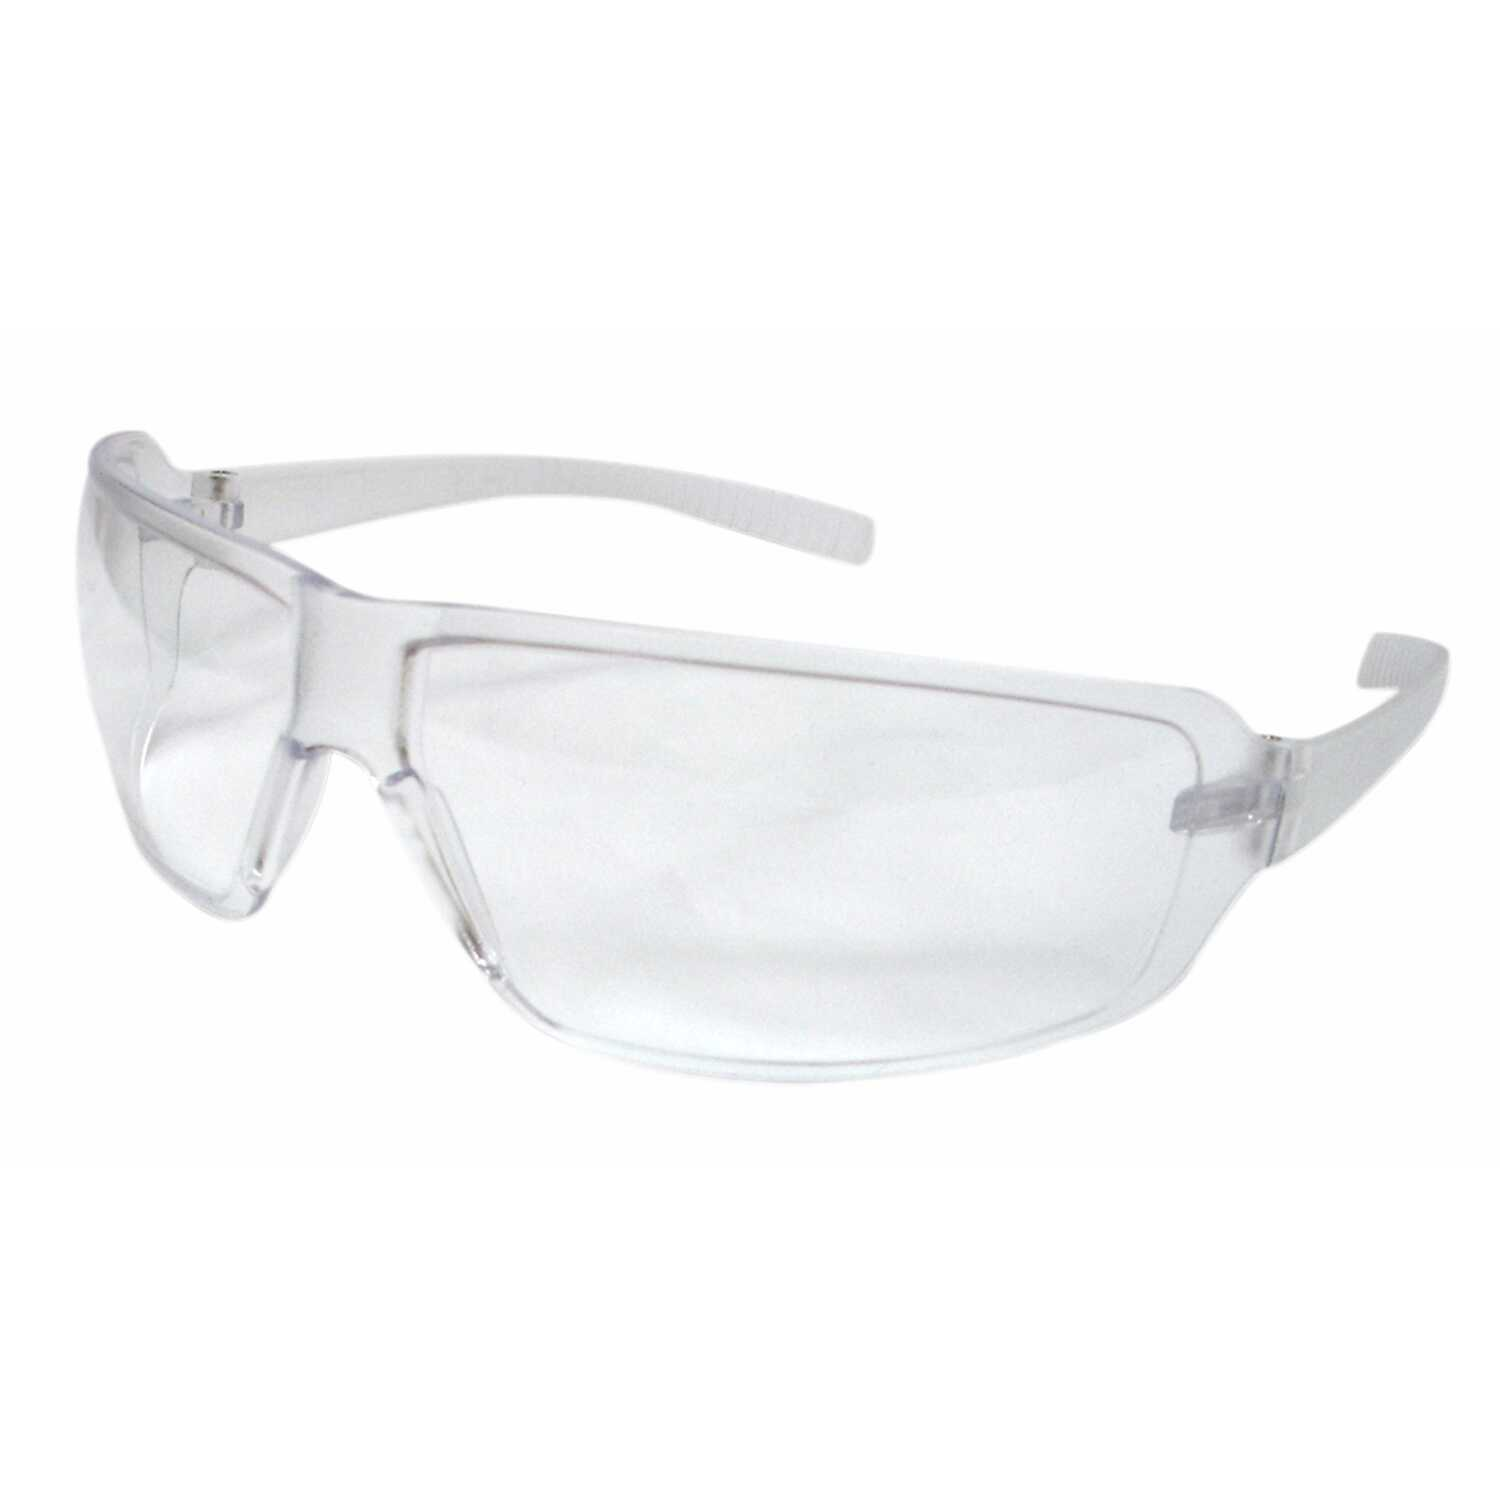 3M  Safety Glasses  Clear Lens Clear Frame 4 pc.